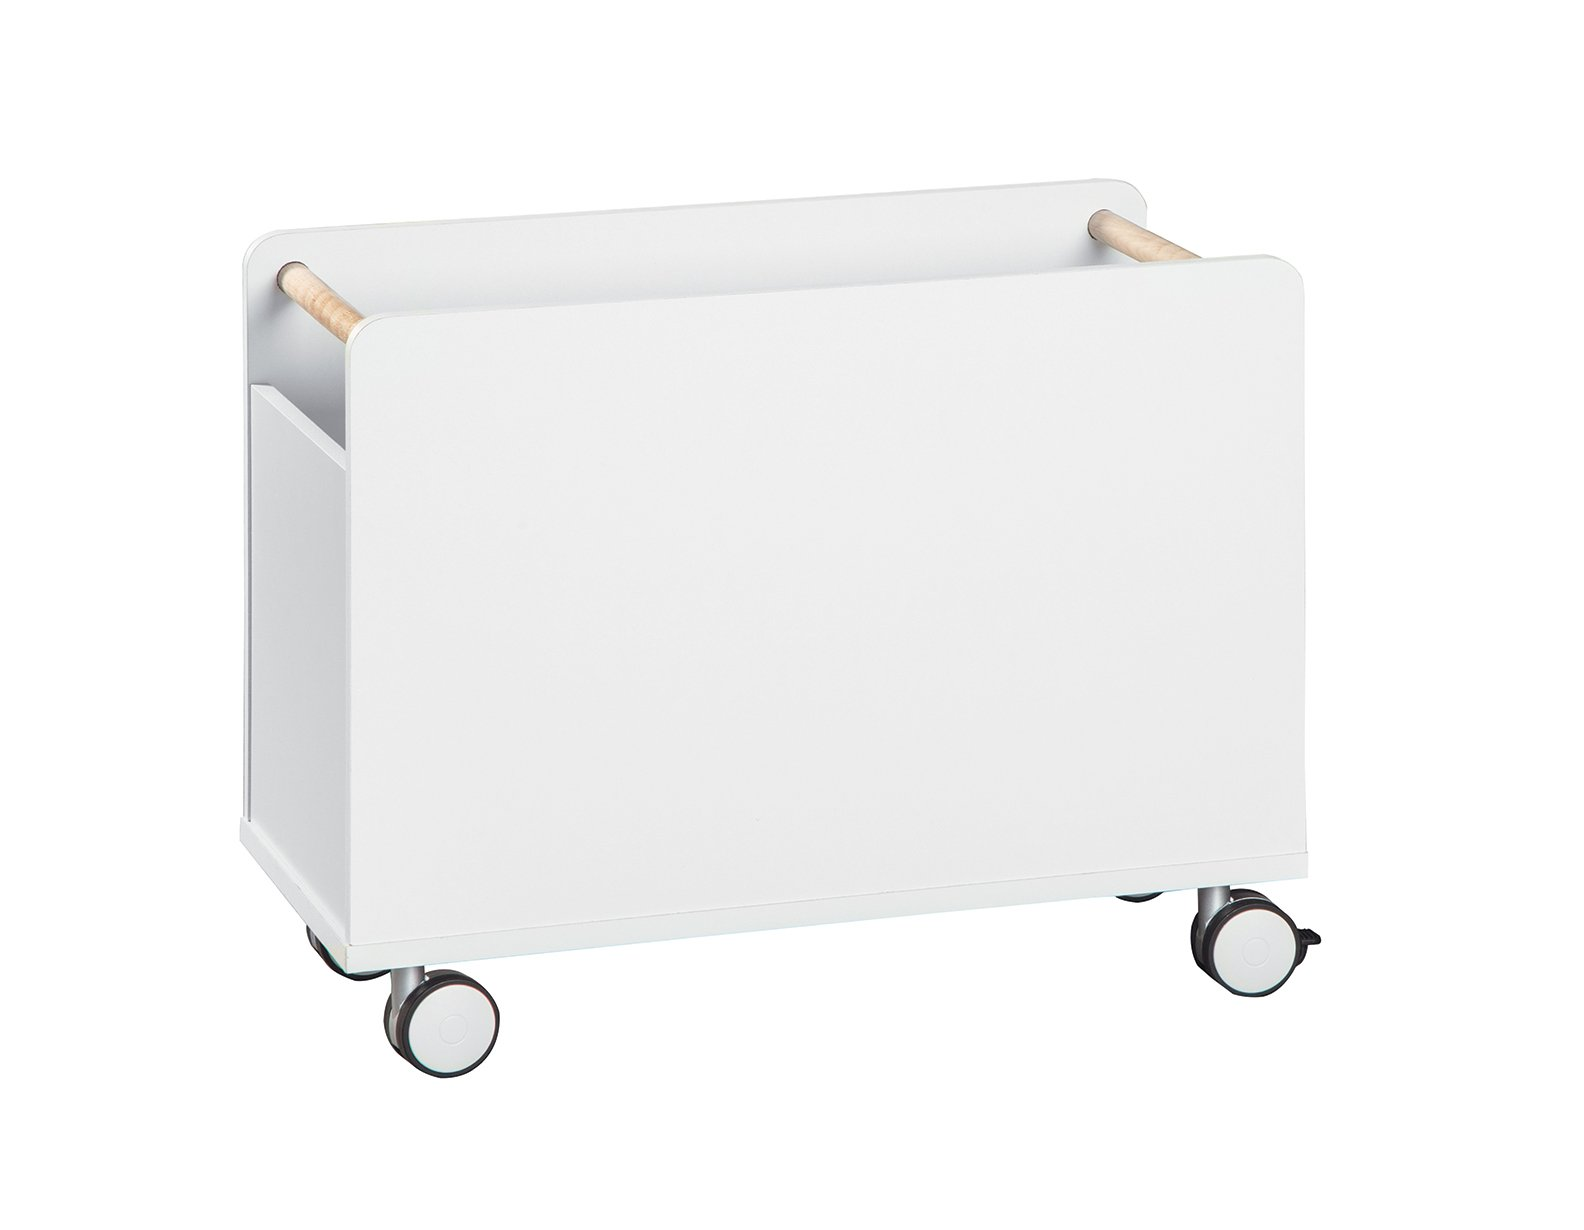 ClosetMaid 1492 KidSpace Mobile Toy Chest, White by ClosetMaid (Image #1)